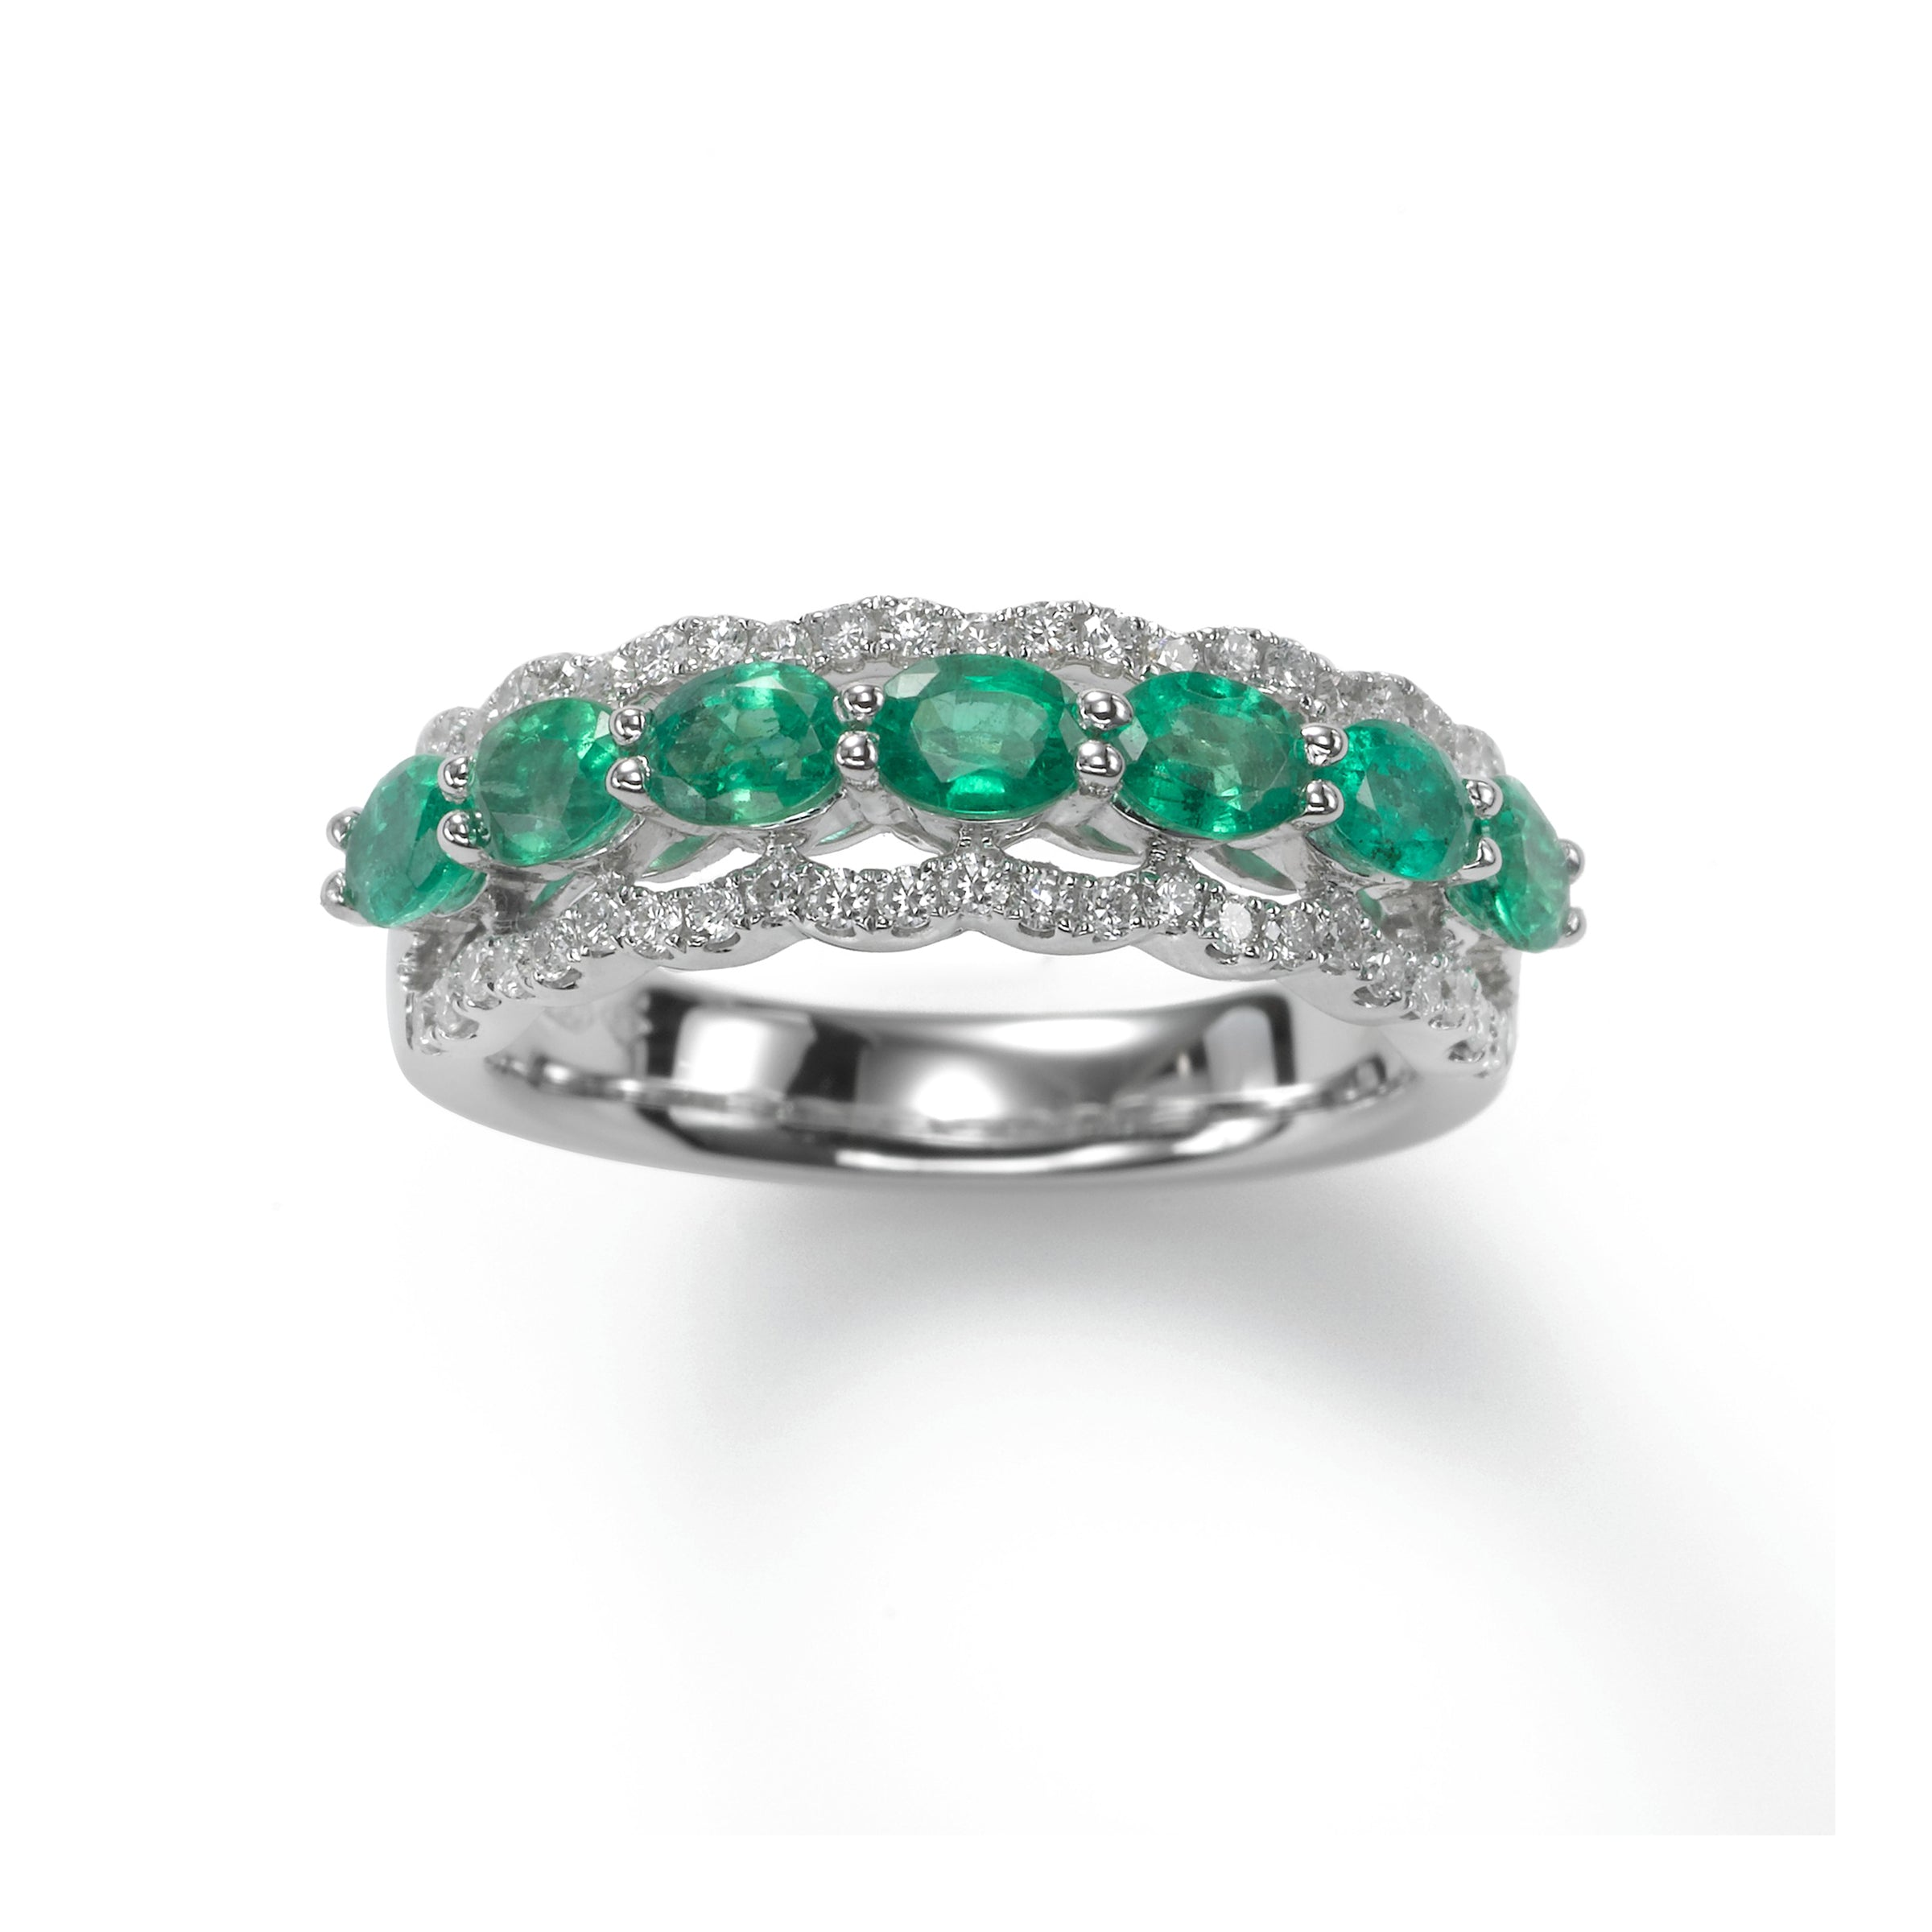 Oval Emeralds Band with Diamonds, 18K White Gold